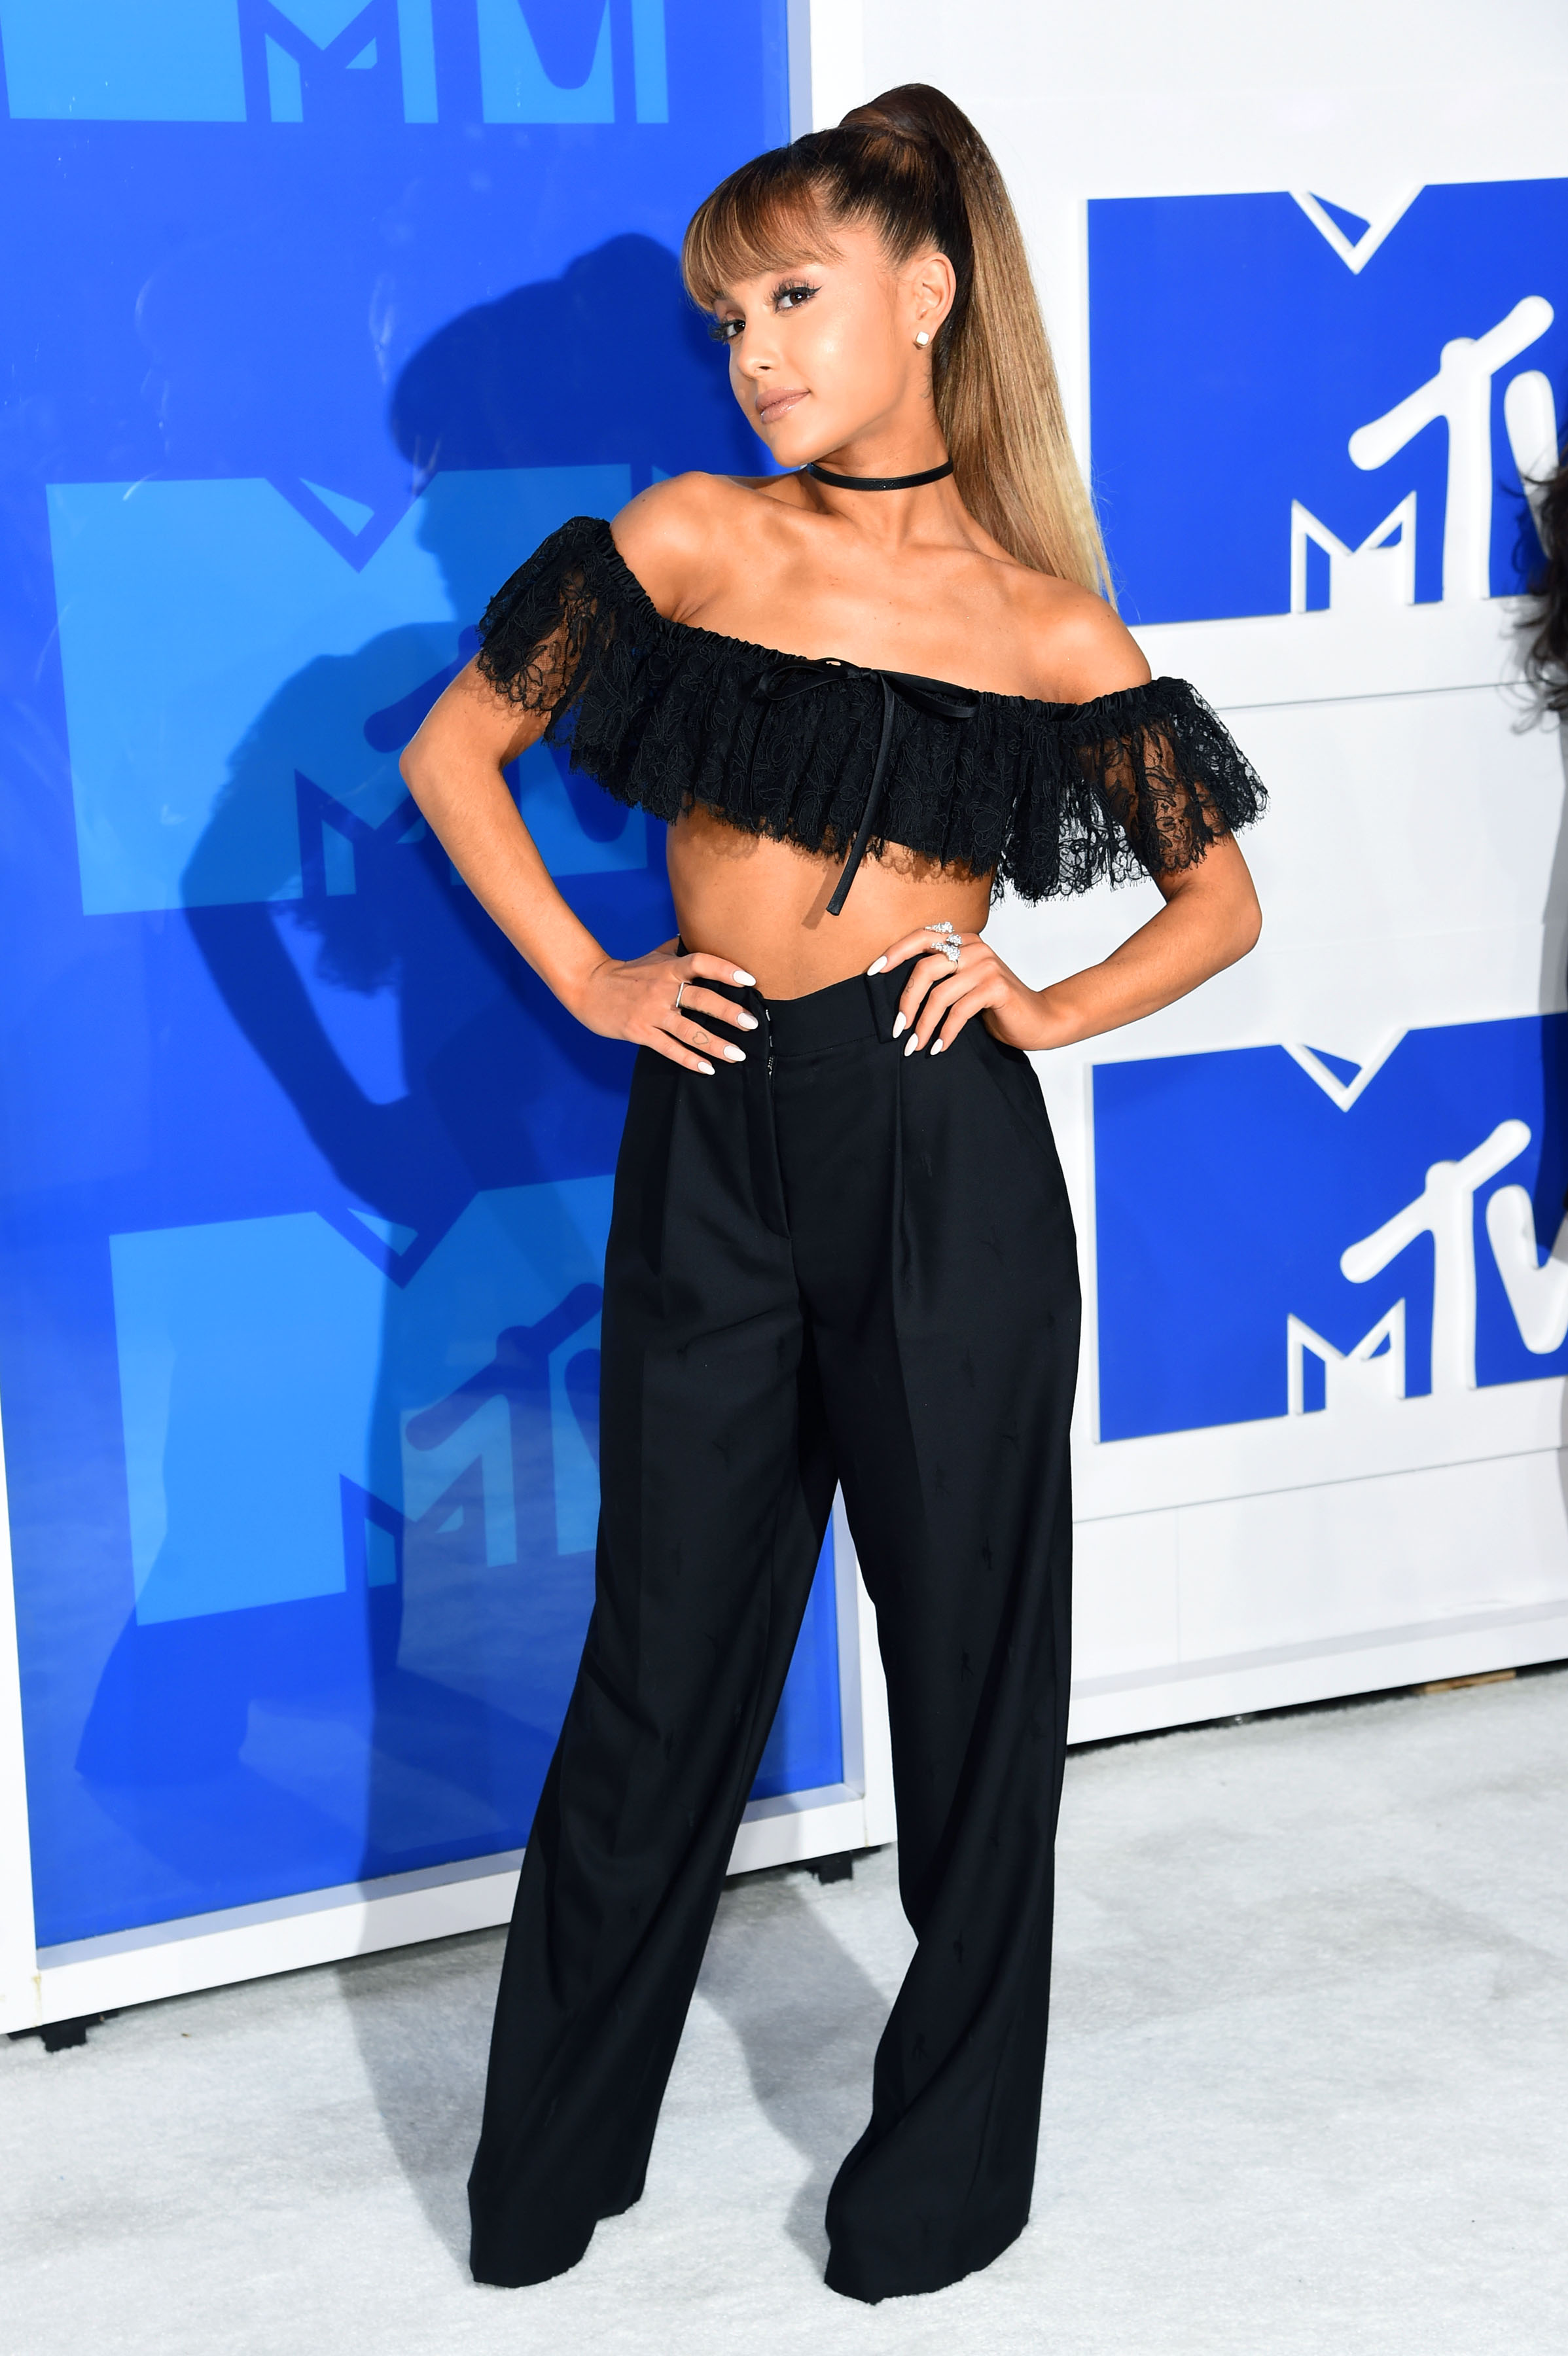 Ariana Grande attends the 2016 MTV Video Music Awards at Madison Square Garden on Aug. 28, 2016 in New York City.